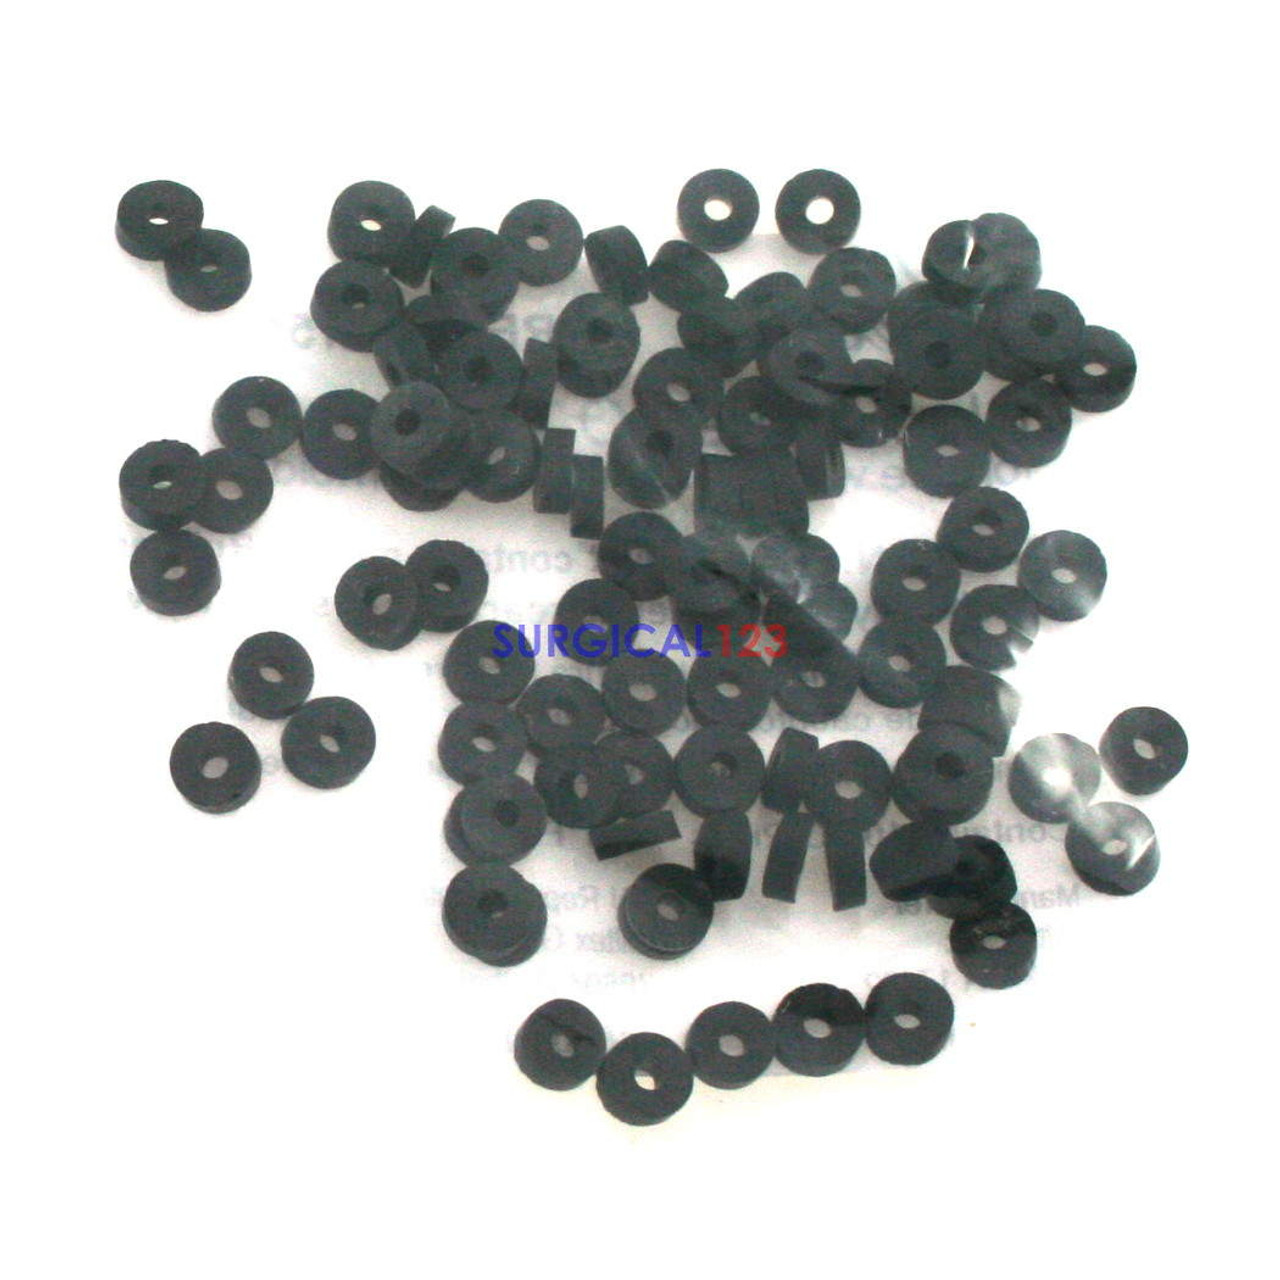 Latex O-Rings, Pack of 100, for use with Hemorrhoidal Ligators ...